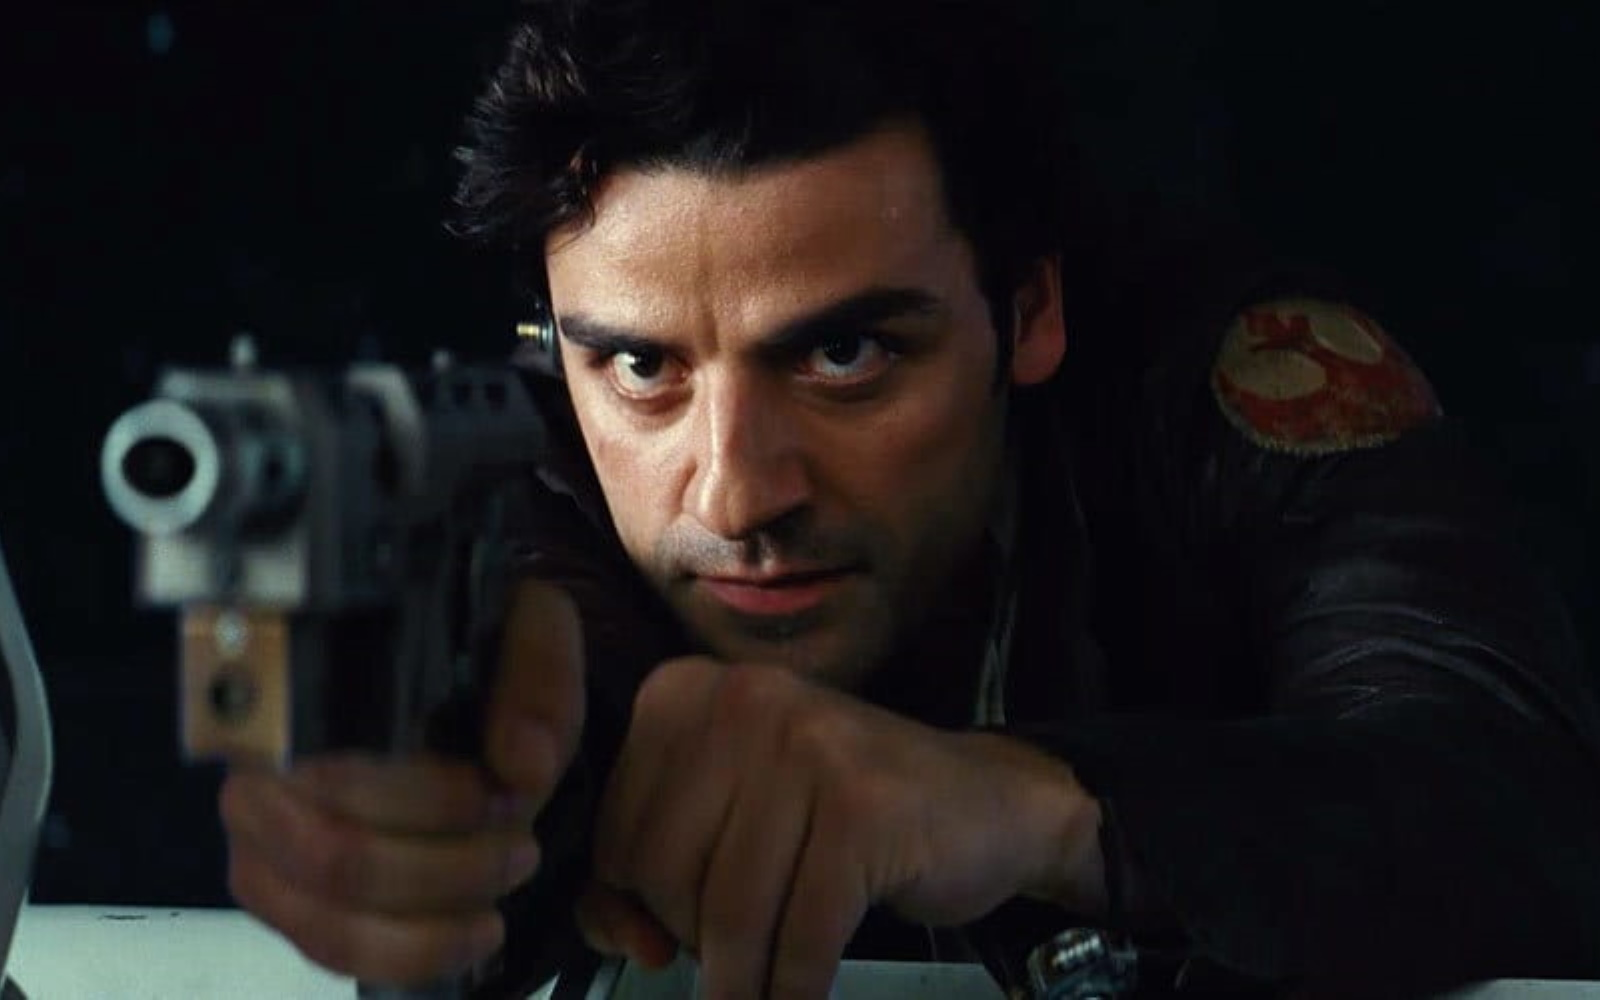 Oscar Issac To Play Solid Snake In Metal Gear Solid Movie